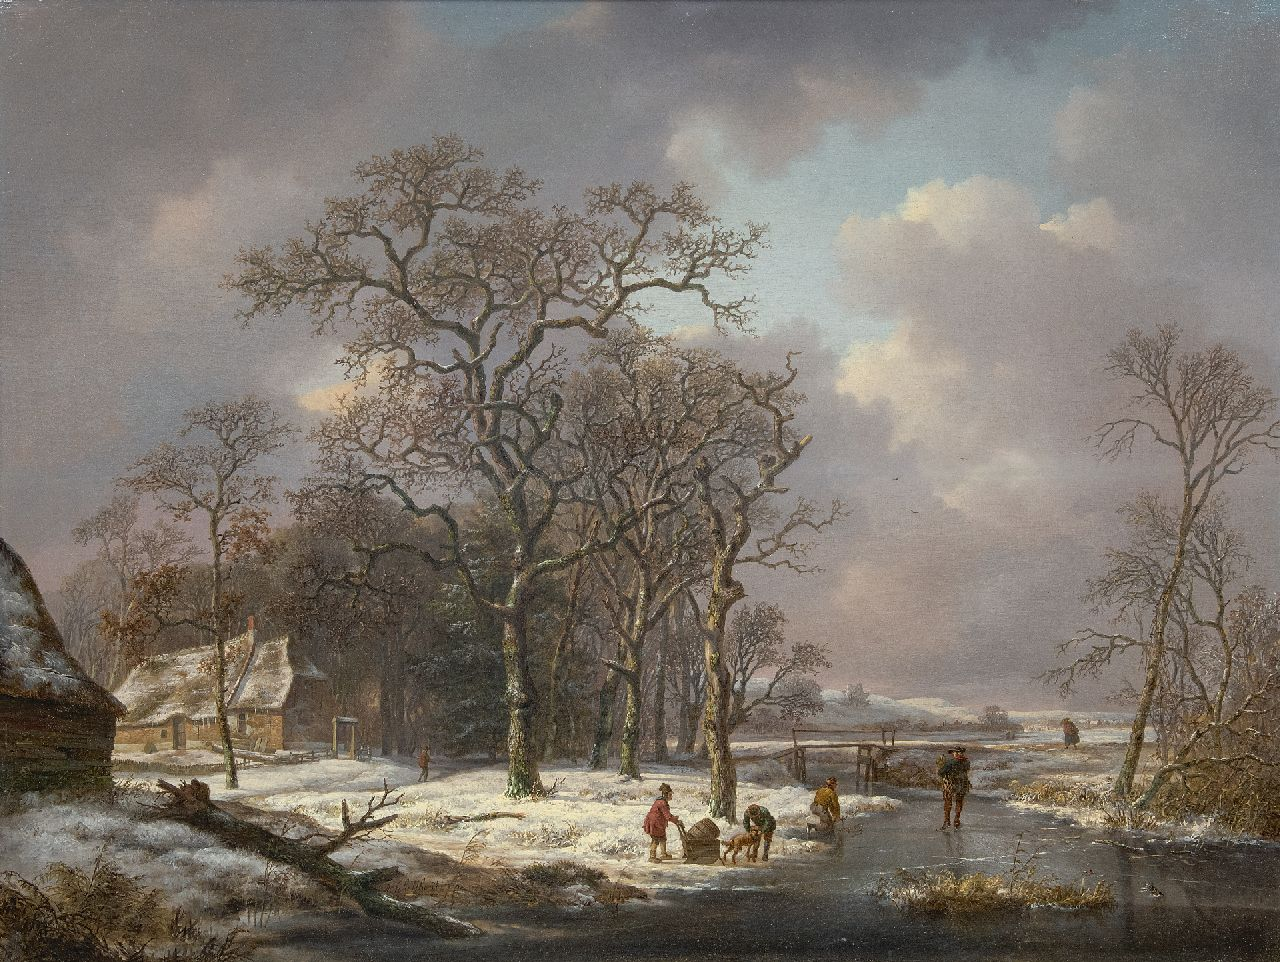 Schelfhout A.  | Andreas Schelfhout | Paintings offered for sale | A snowy landscape with figures on a frozen ditch, oil on panel 53.2 x 71.0 cm, signed l.c. and painted ca. 1815-1820